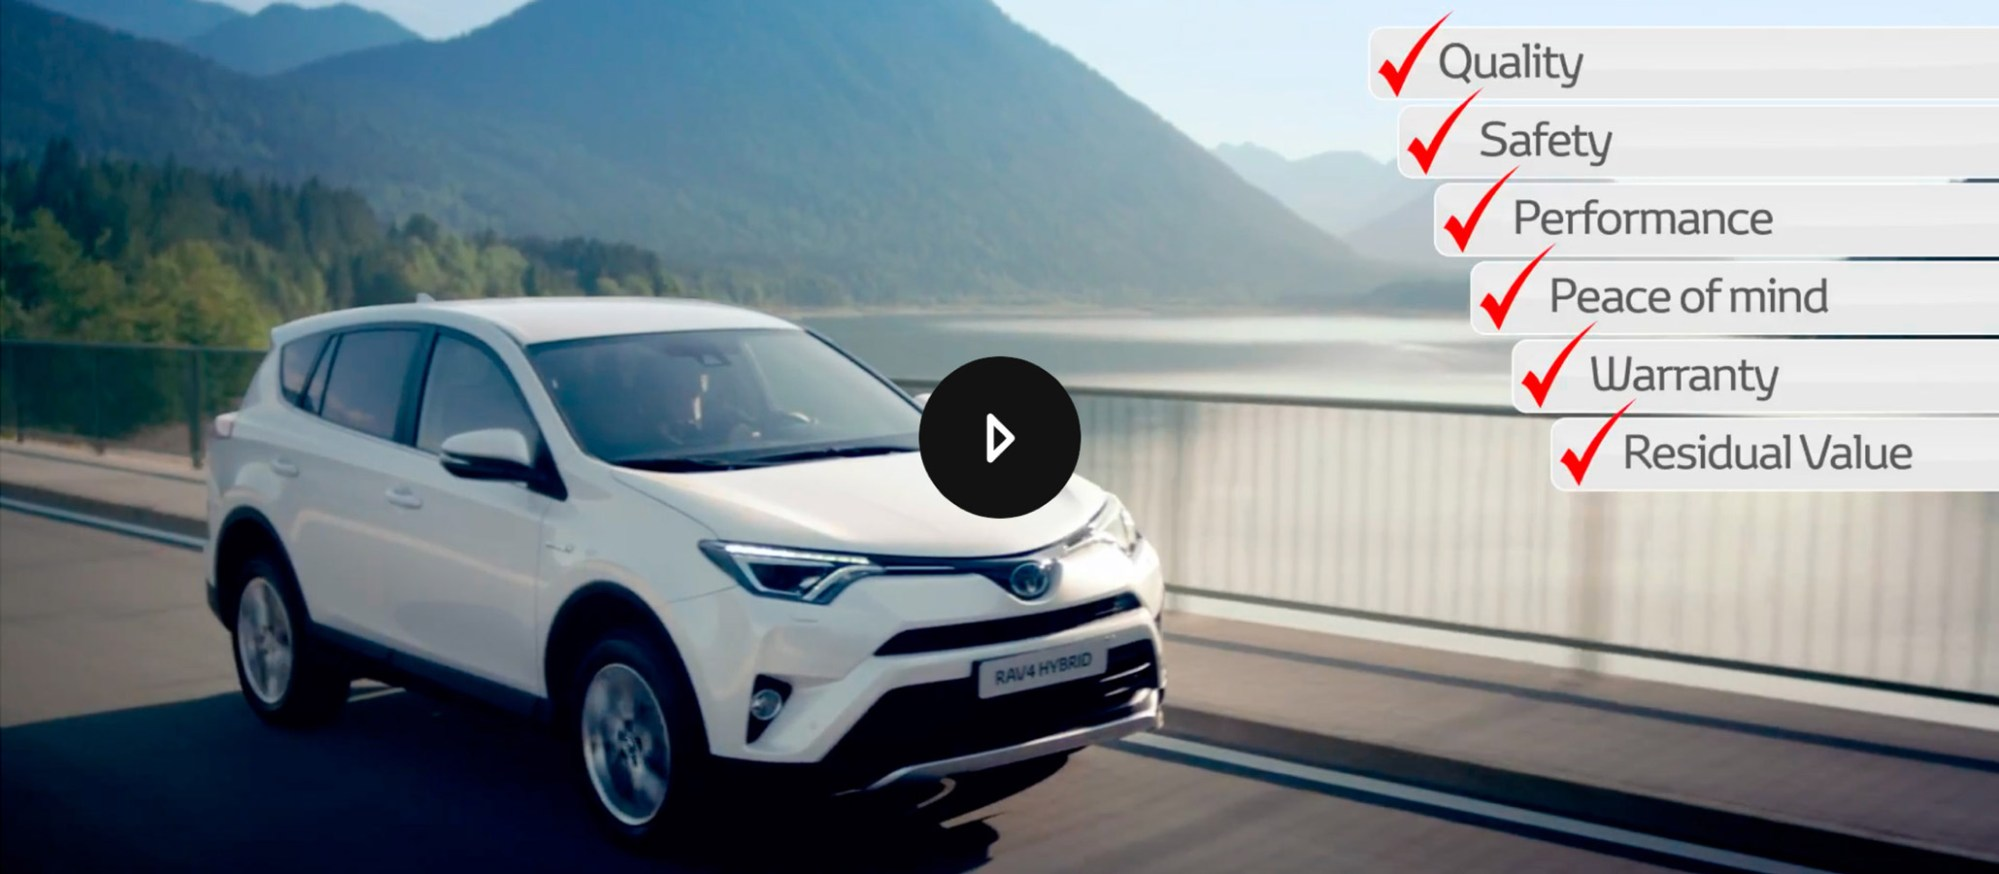 hight resolution of why choose toyota genuine parts